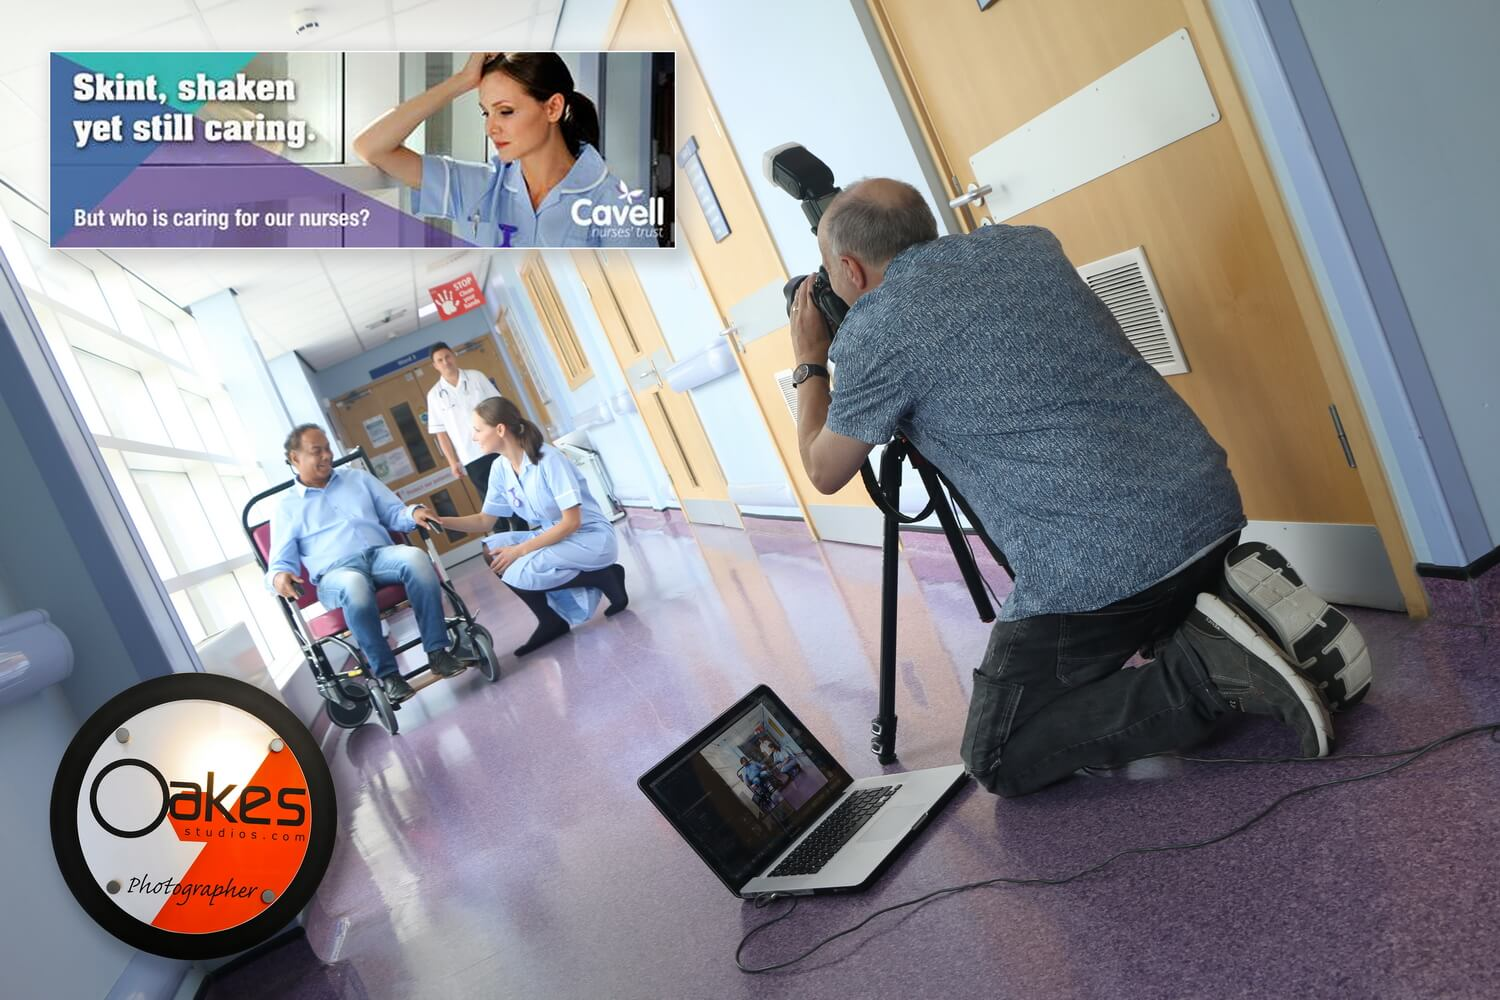 Charity advertising photography in Birmingham - Cavell Nurses campaign